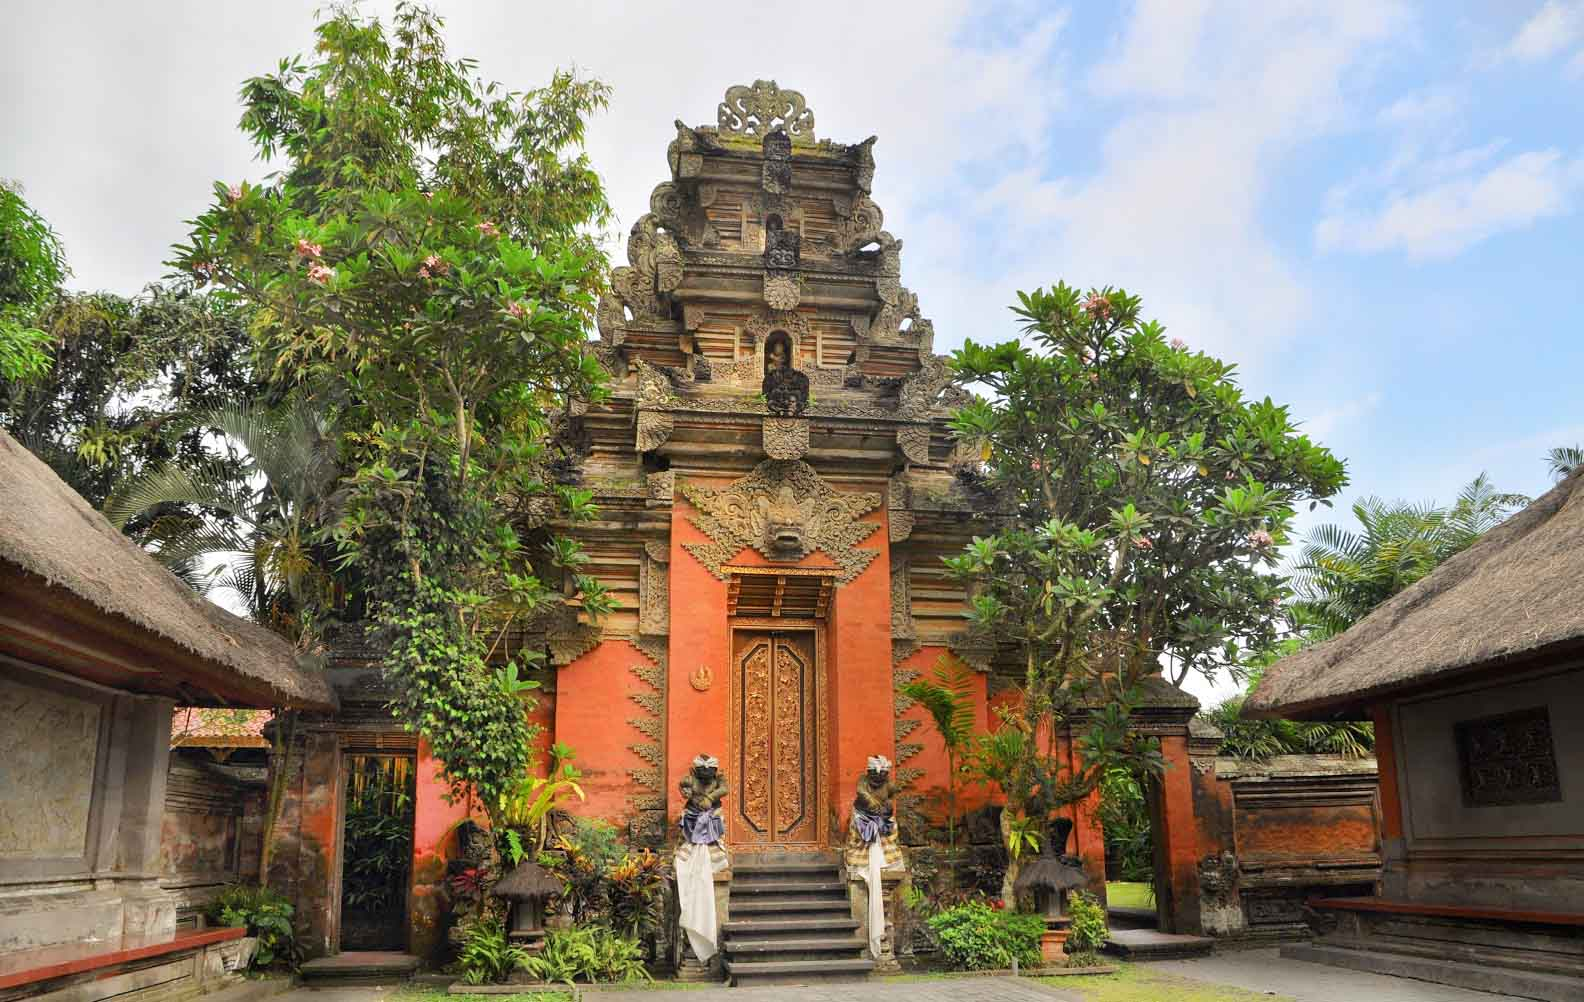 More commonly known as the Ubud Royal Palace, Puri Saren Agung of Sukawati was the residence of th